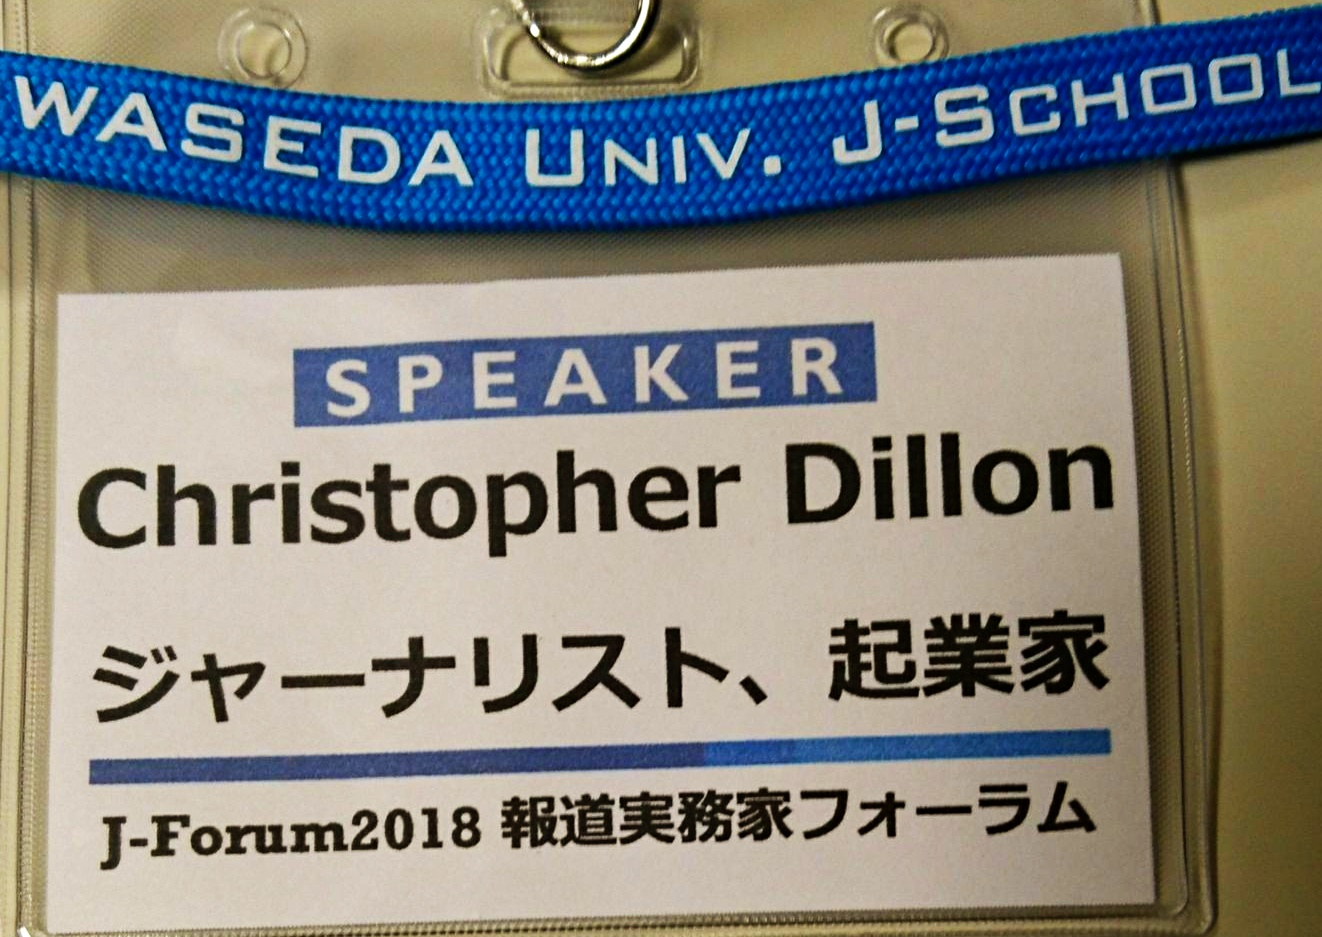 Speaker badge for J-Forum 2018 at Waseda University